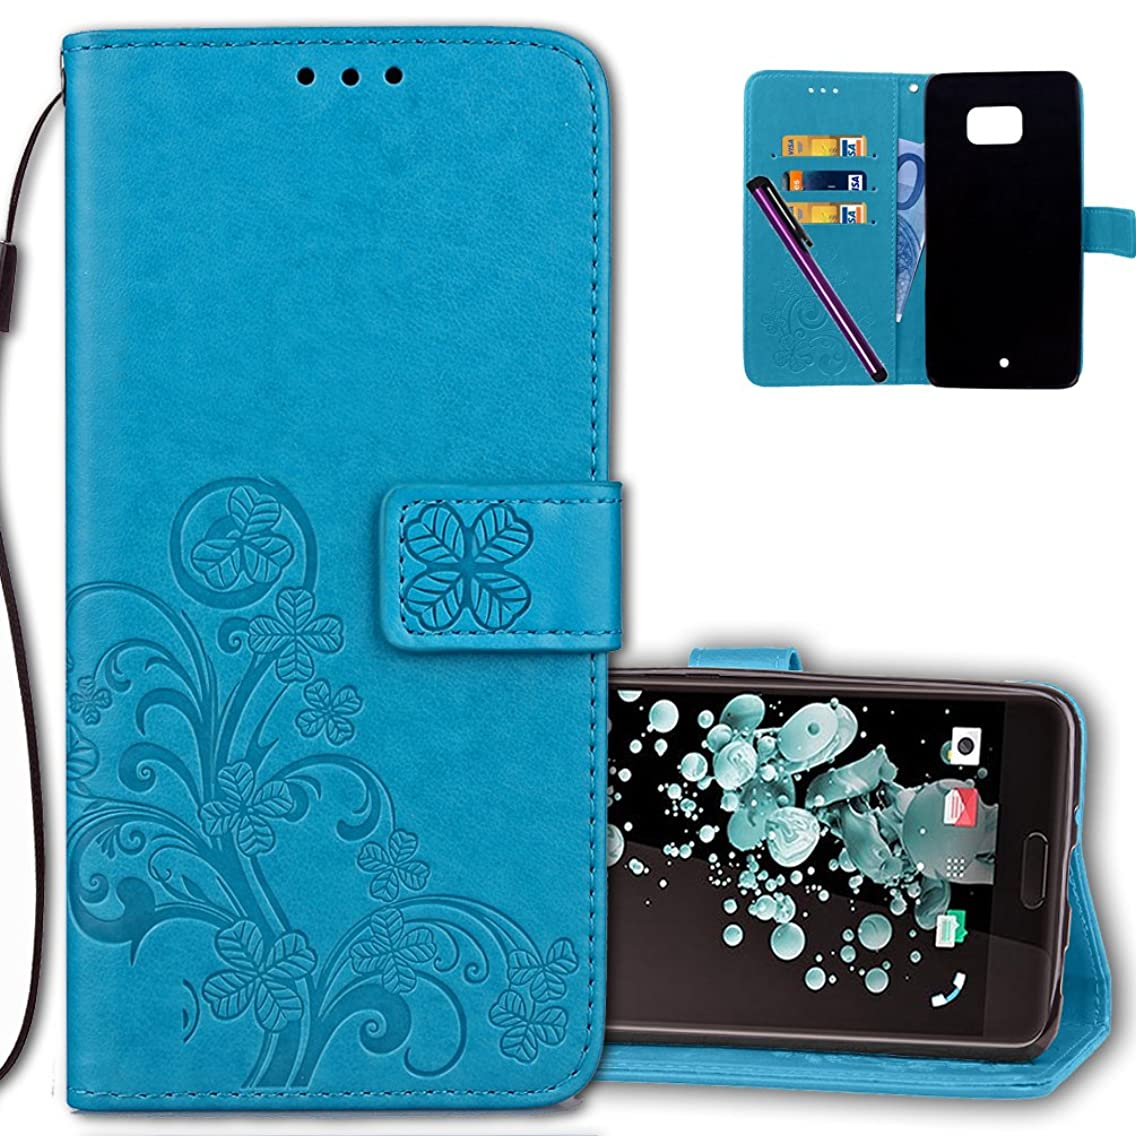 HTC U Ultra Wallet Case Leather COTDINFORCA Premium PU Embossed Design Magnetic Closure Protective Cover with Card Slots for HTC U Ultra (5.7 inch). Luck Clover Blue